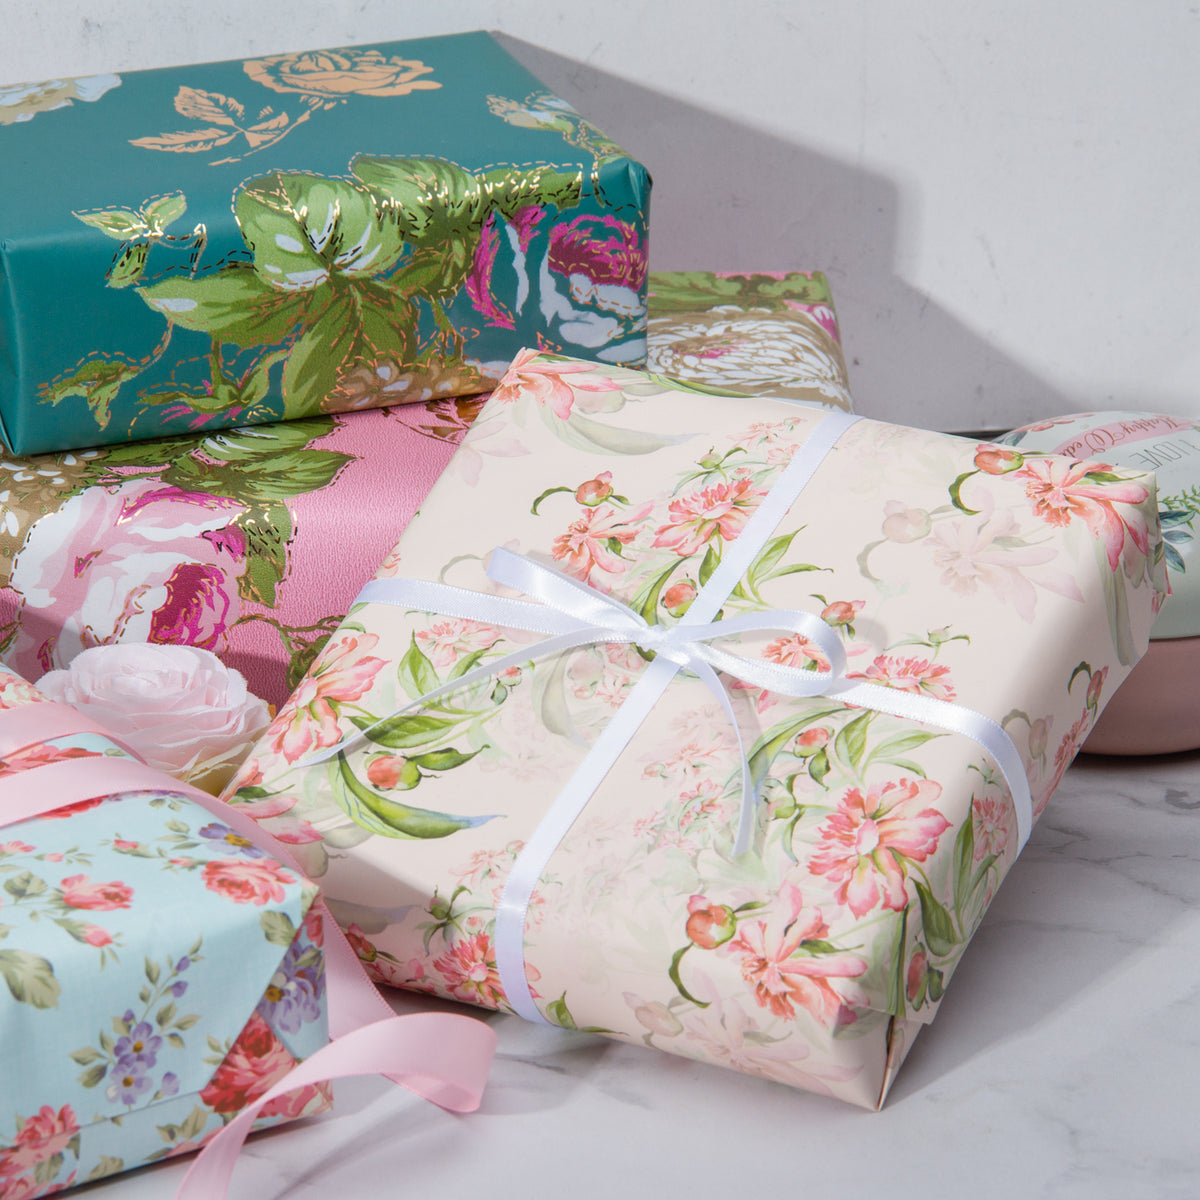 Wrapaholic-Different-Flower-Design-Wrapping-Paper-Sheets-2